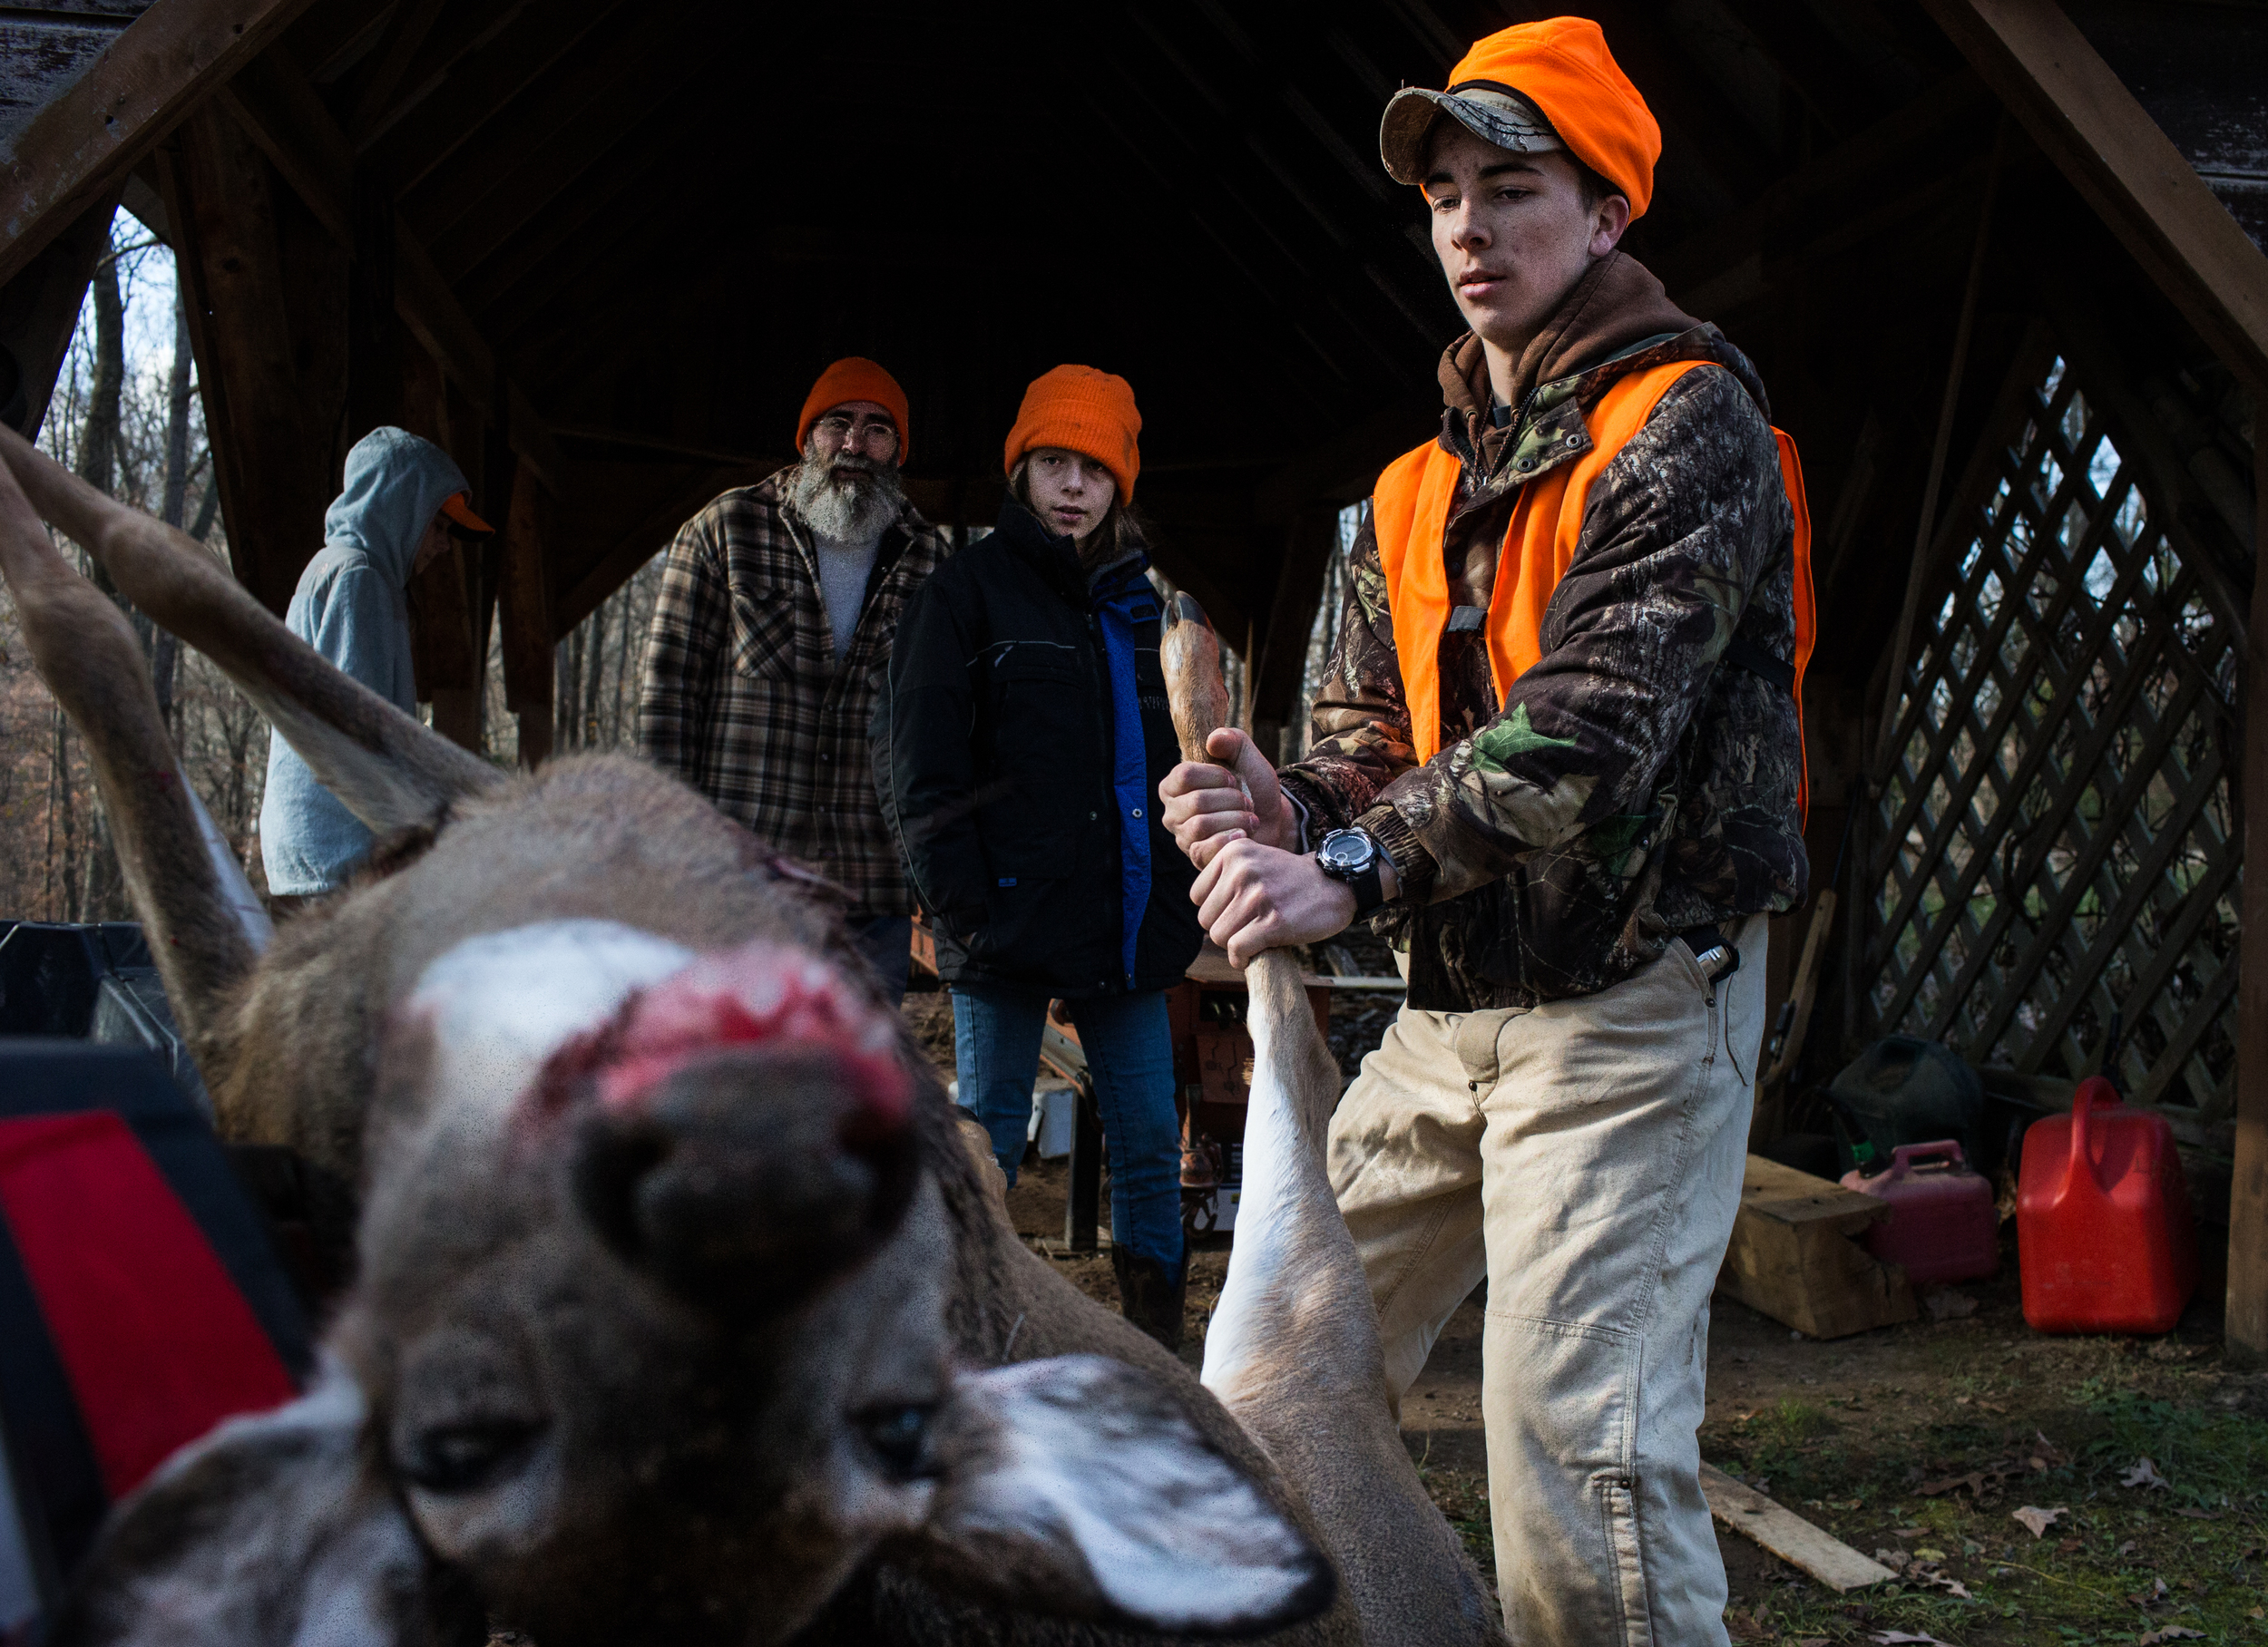 After a long morning of hunting, Tyce Peters, 15, right, dragged a doe into his families shed so that his dad, Aaron Peters, could begin skinning and butchering the deer. The Peters, a family of 13, live in Richardsville, Kentucky, and enjoy hunting anything from deer to coyotes.